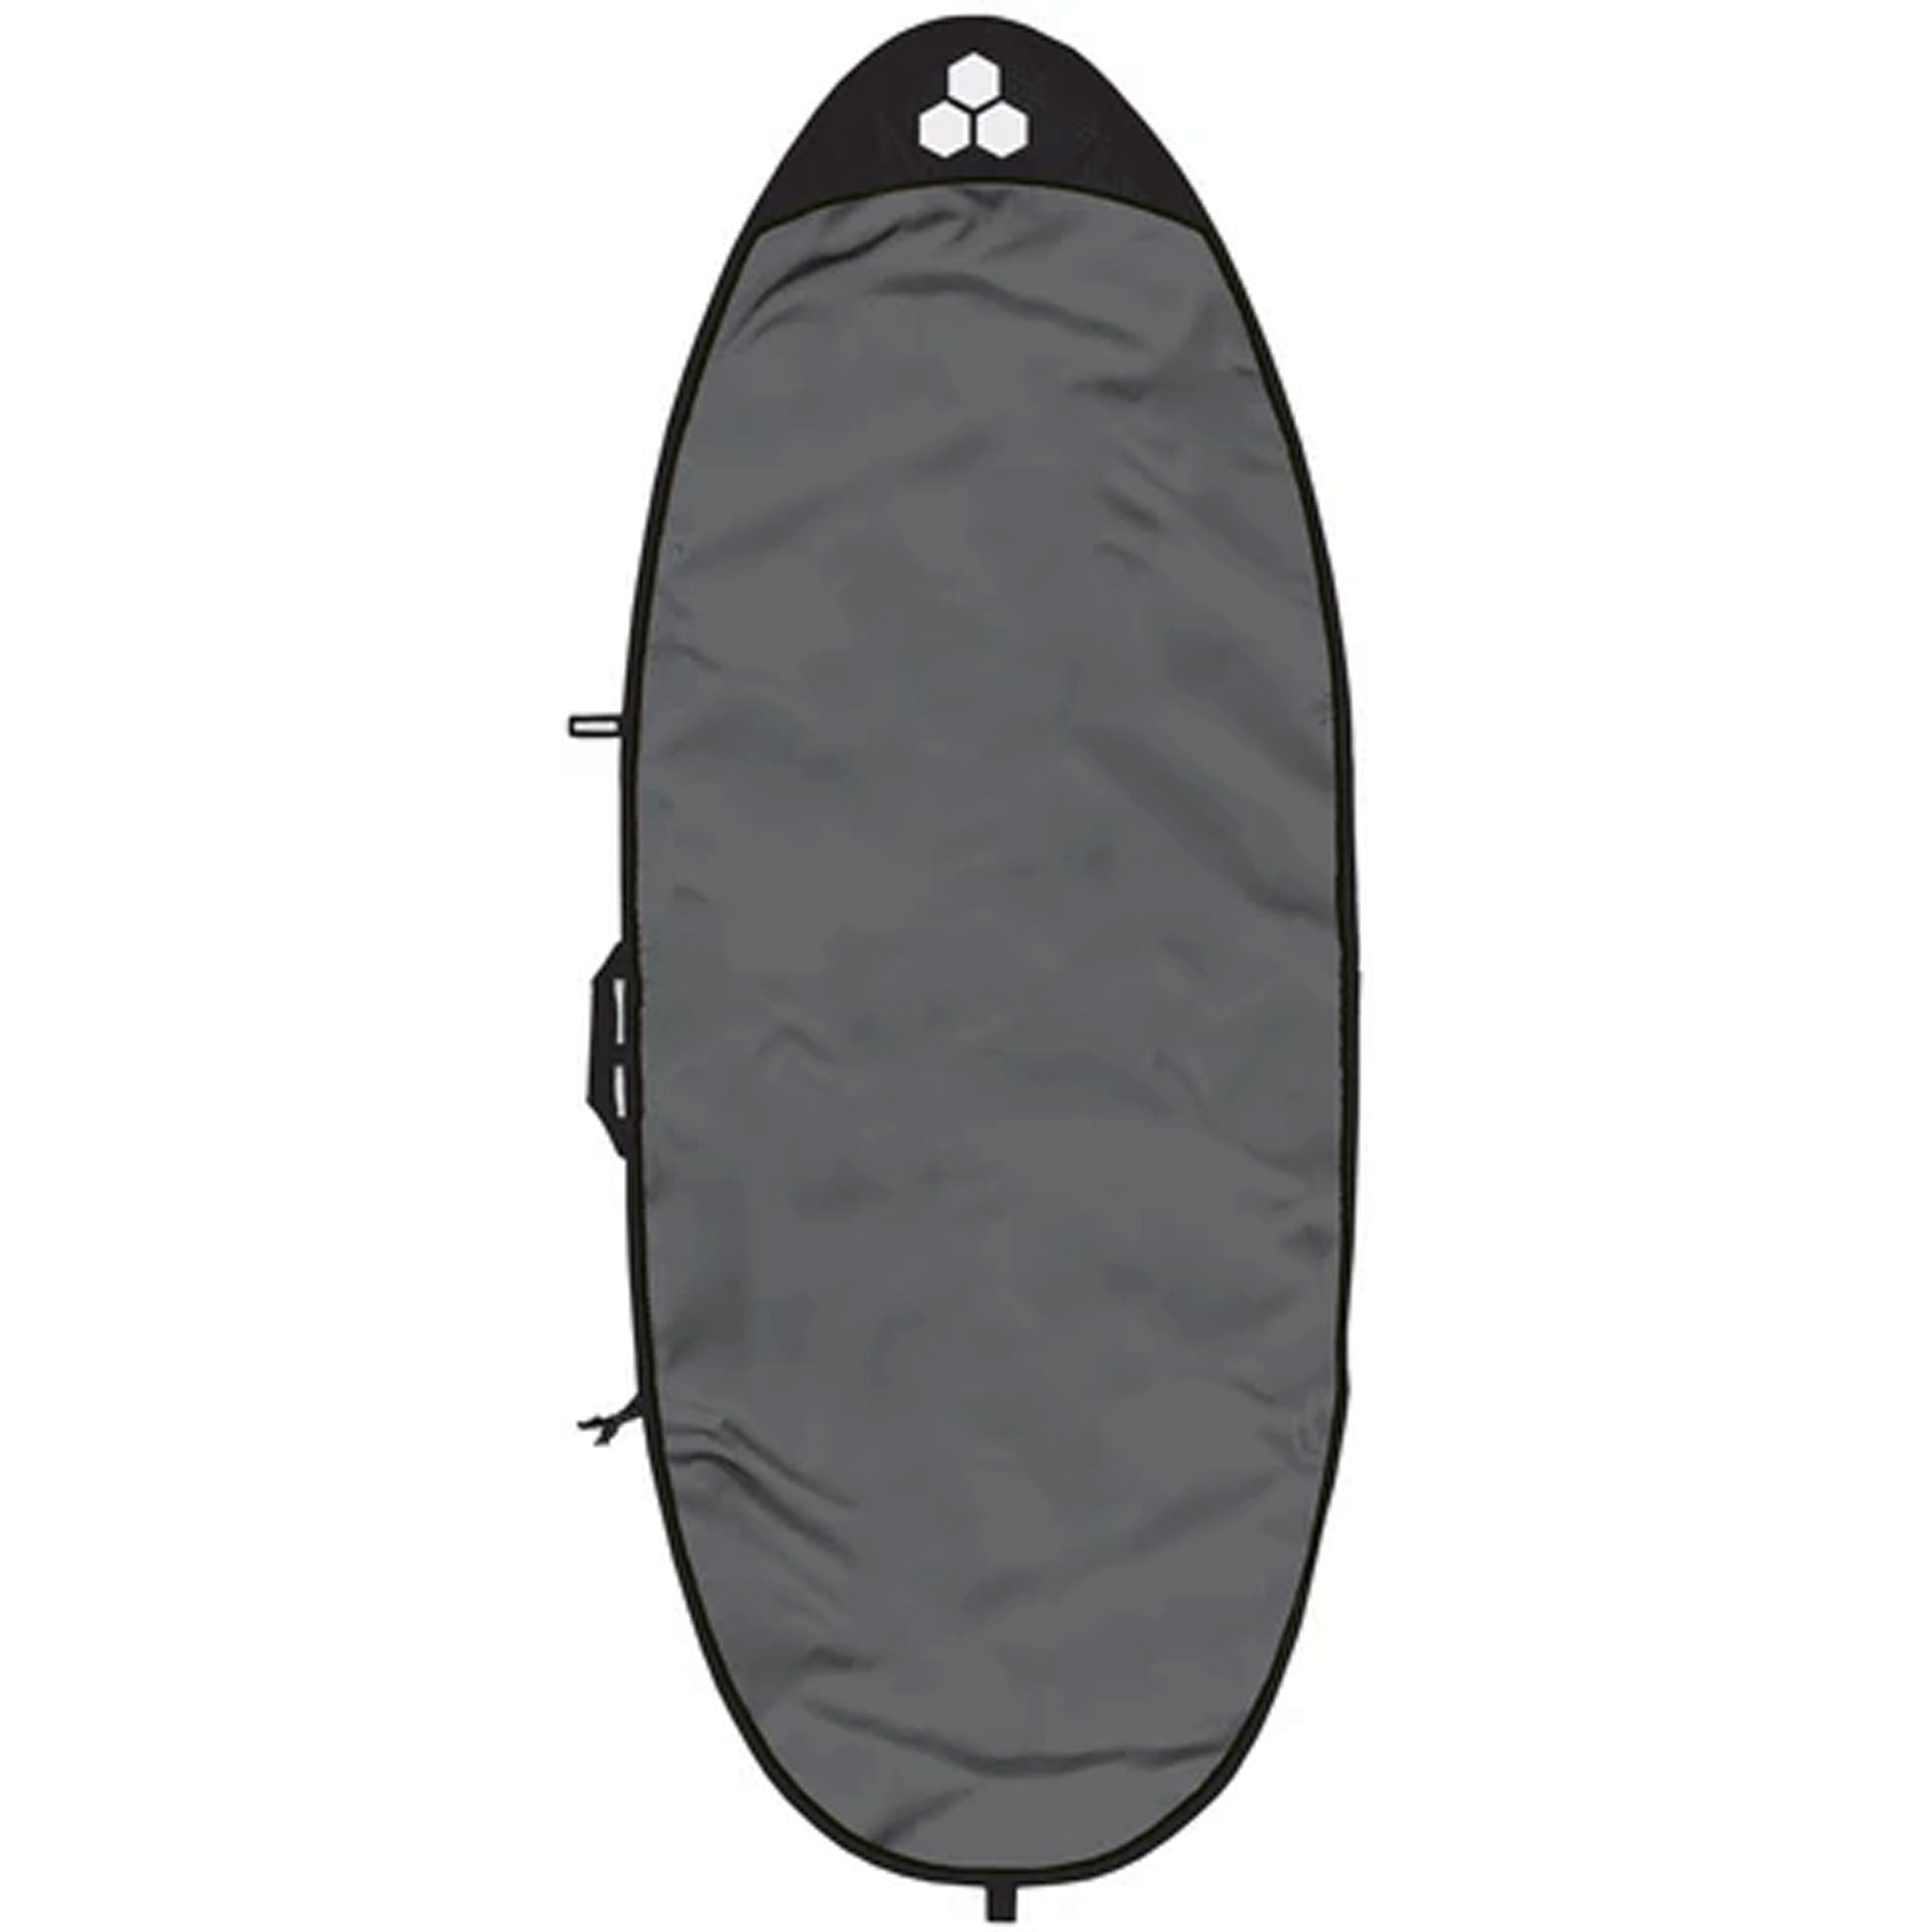 Channel Islands Feather Light Specialty Surfboard Bag